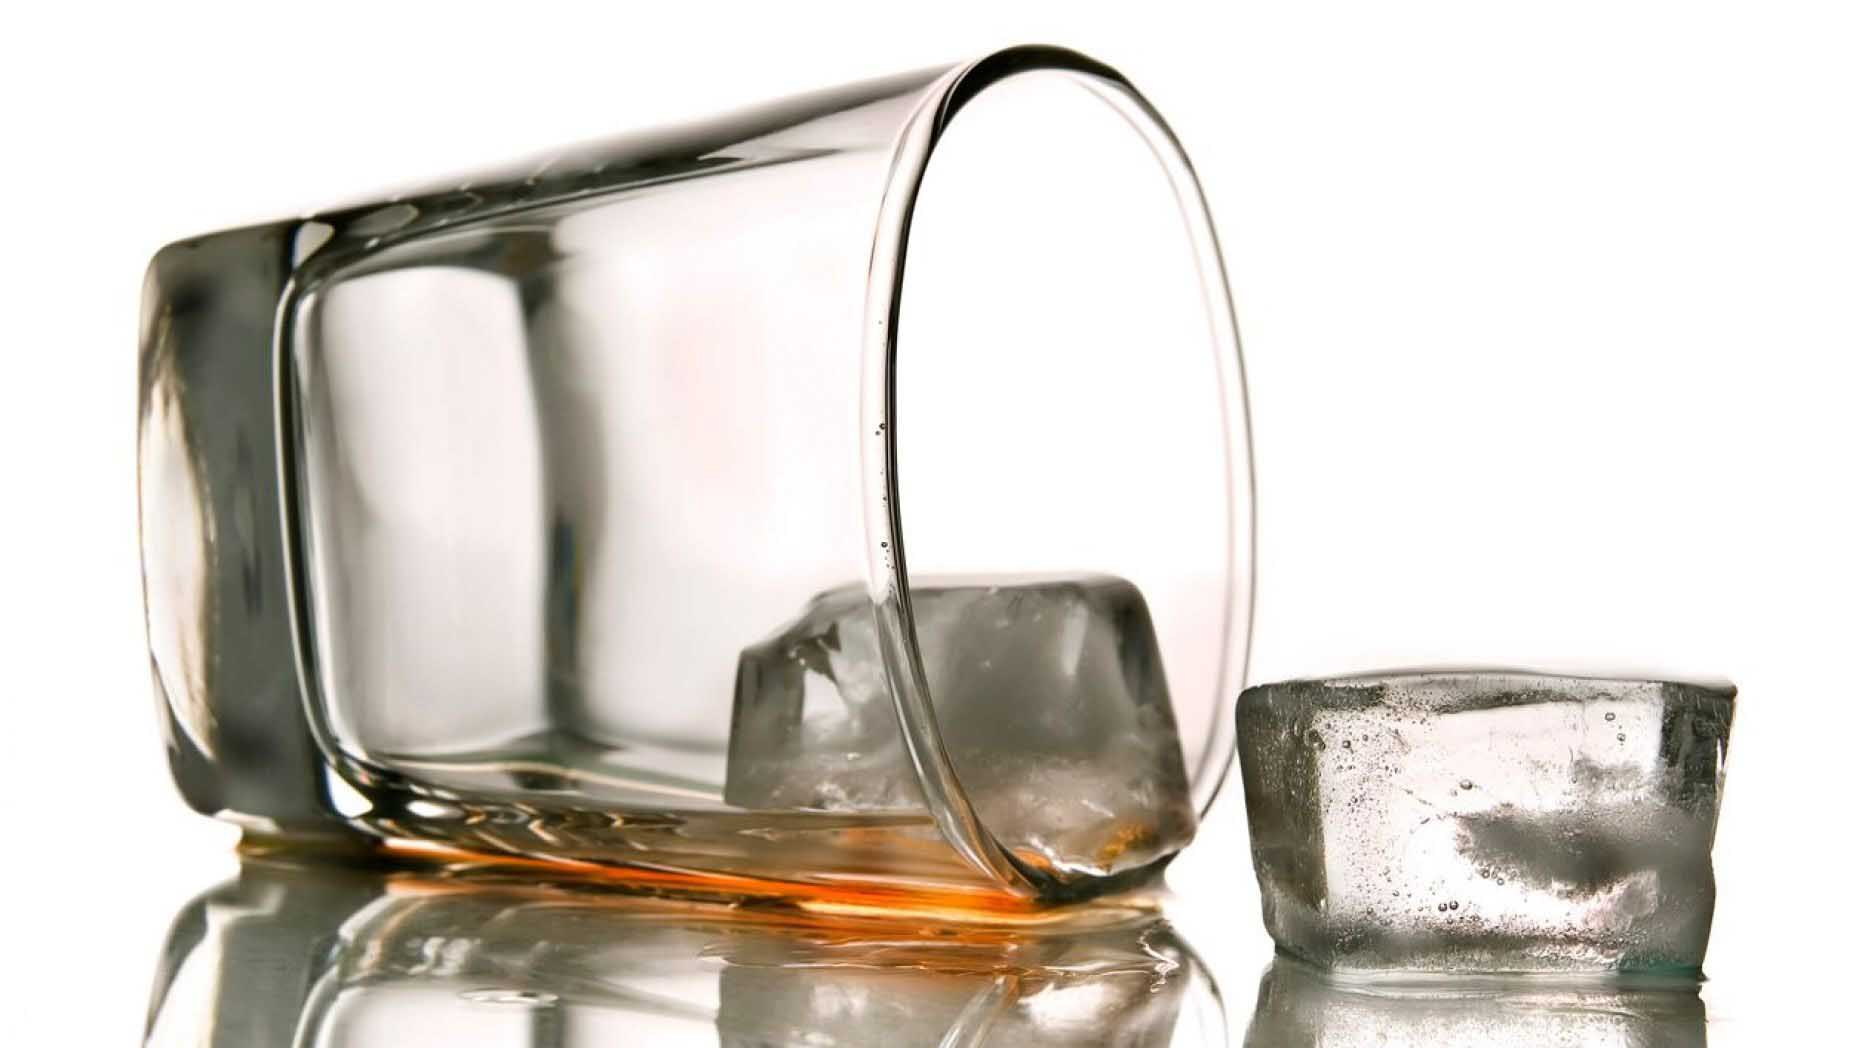 Alcohol over time can predict alcohol use disorder